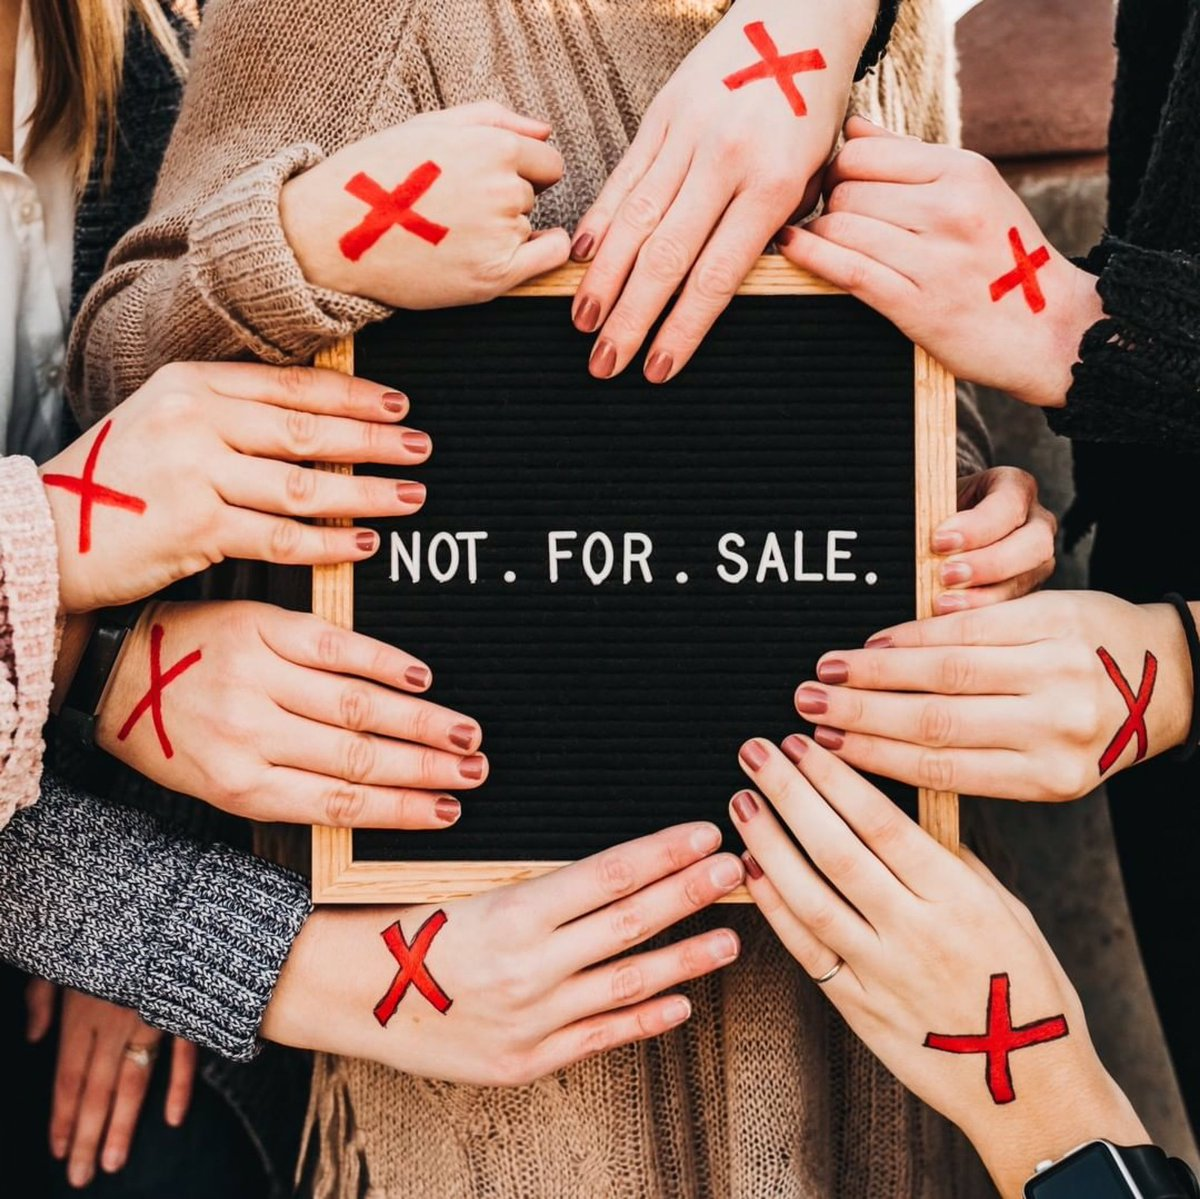 40 million people trapped in slavery. Nearly 1 in 4 victims is a child. Today we STAND for what's right until the number of men, women and children suffering in silence moves from 40 million to zero. RT if you are in it to END IT. ❌#enditmovement